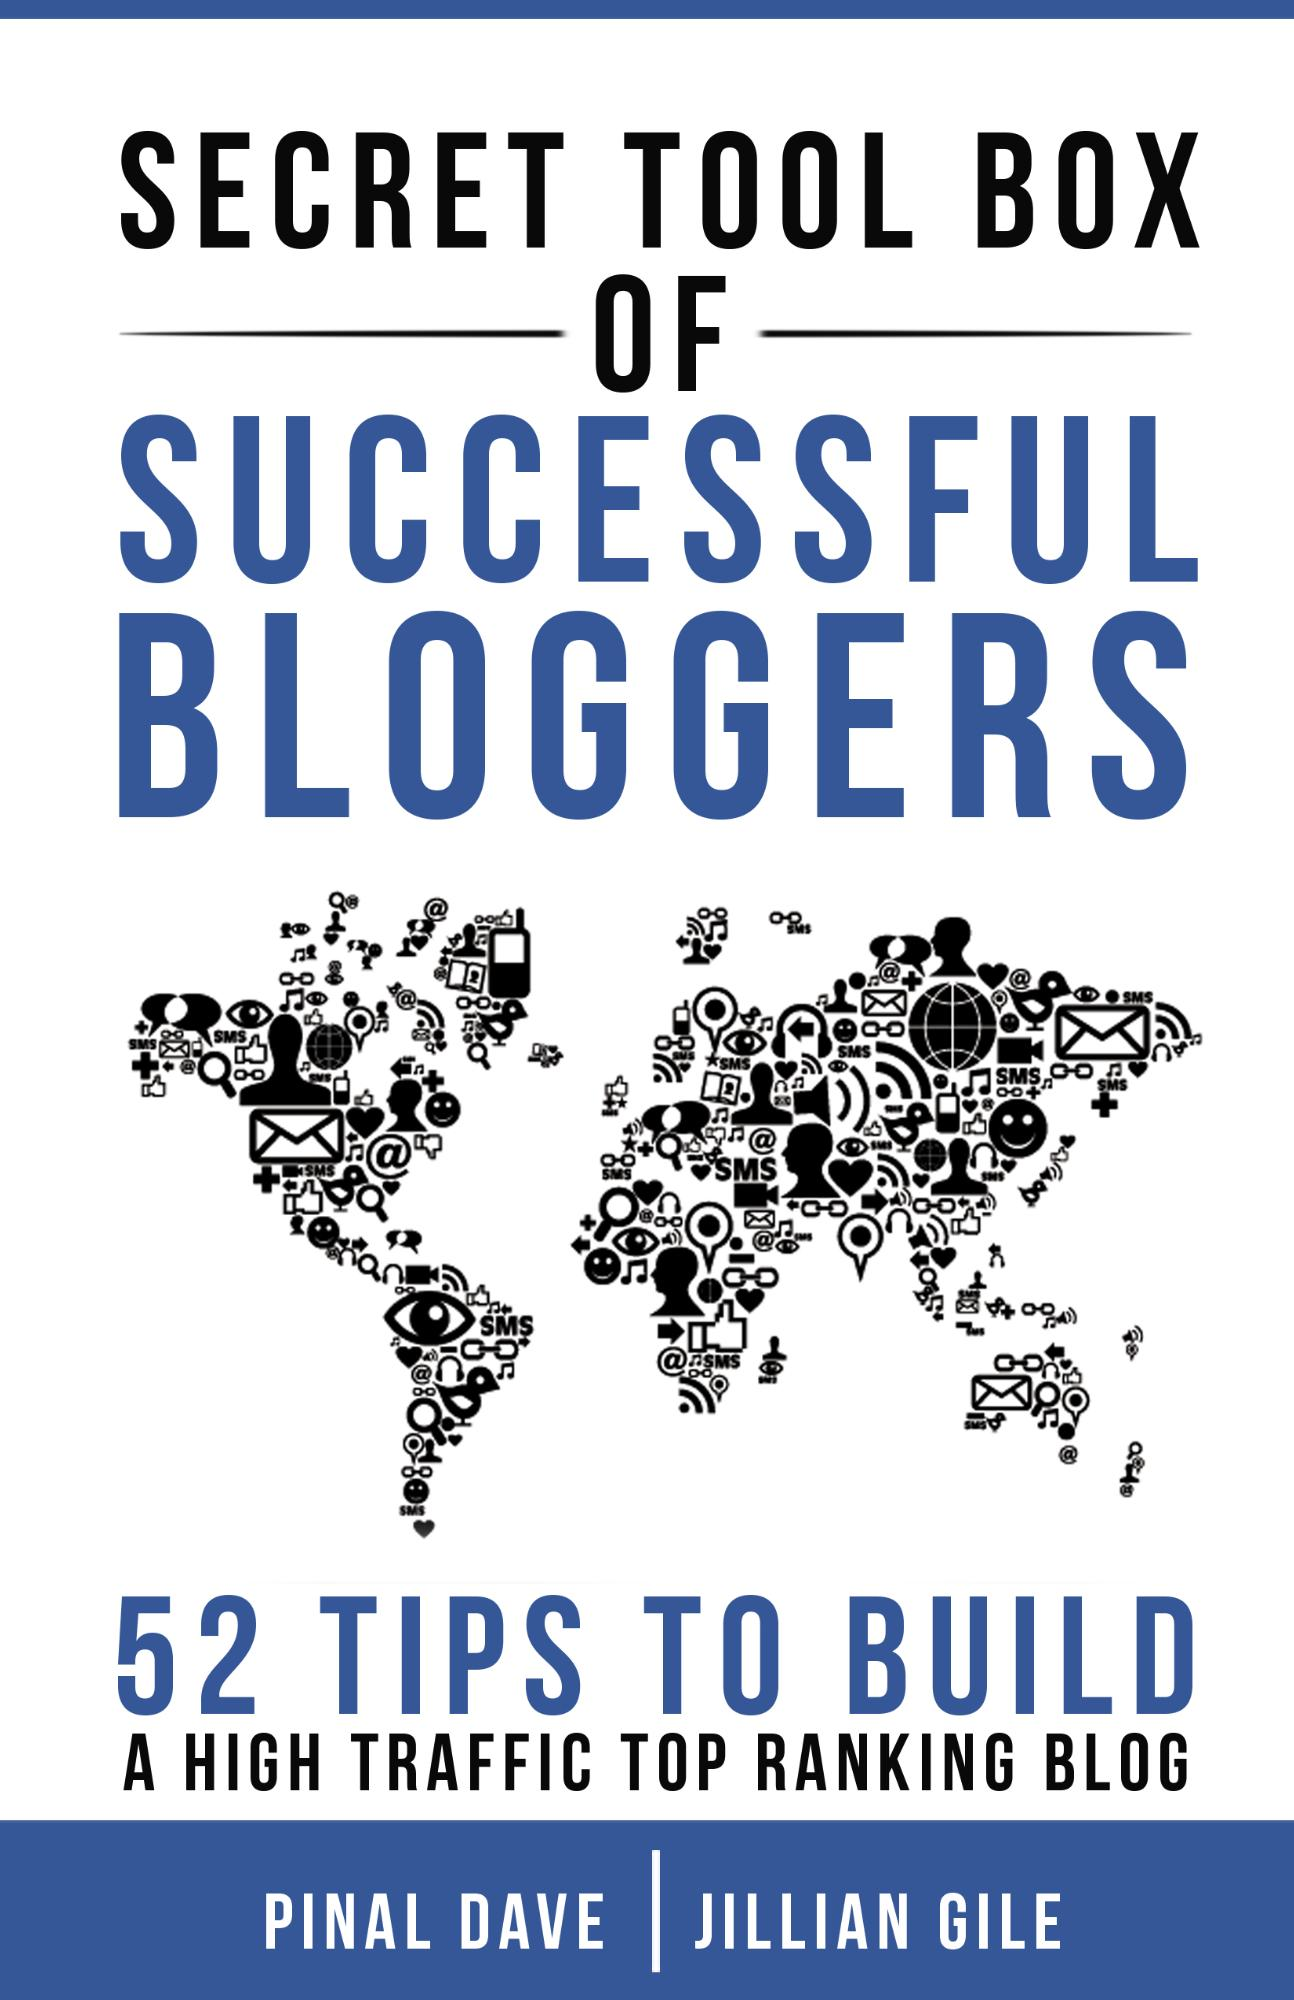 SQL Authority News - Secret Tool Box of Successful Bloggers: 52 Tips to Build a High Traffic Top Ranking Blog BloggingCover